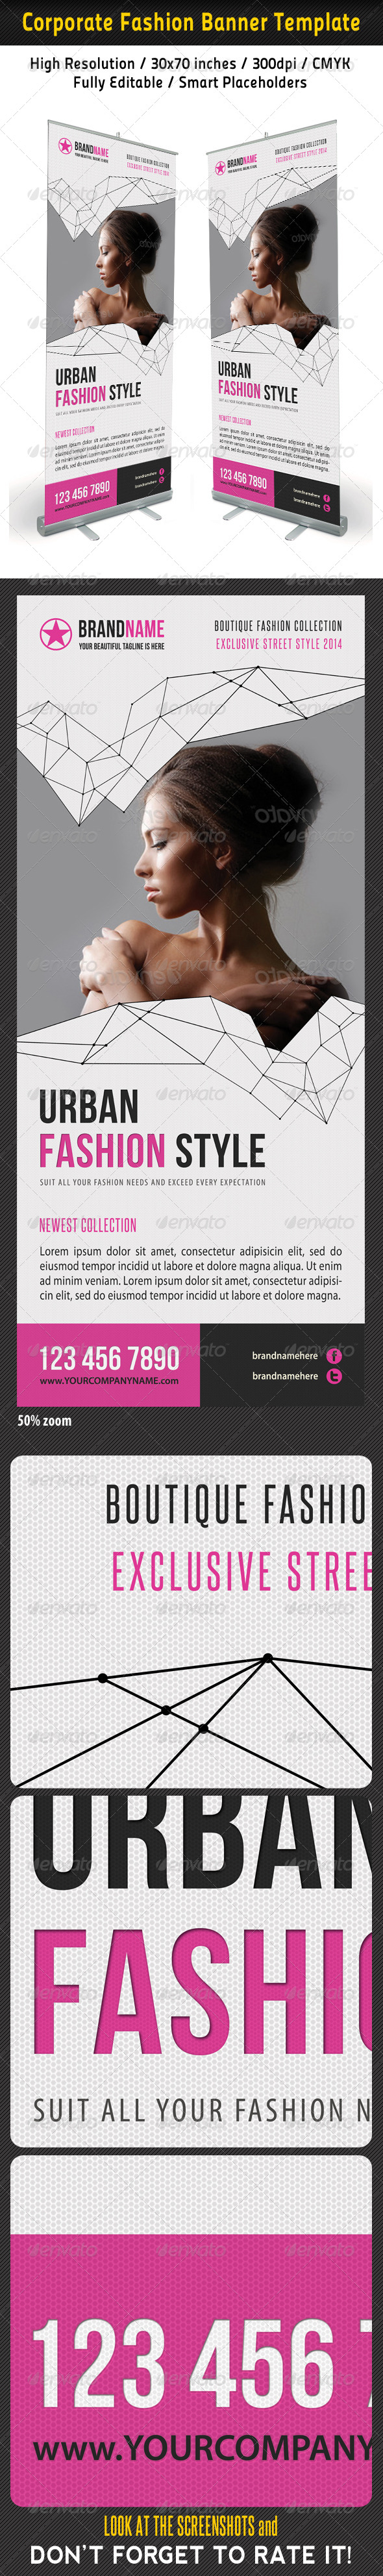 Fashion Multipurpose Banner Template 24 - Signage Print Templates